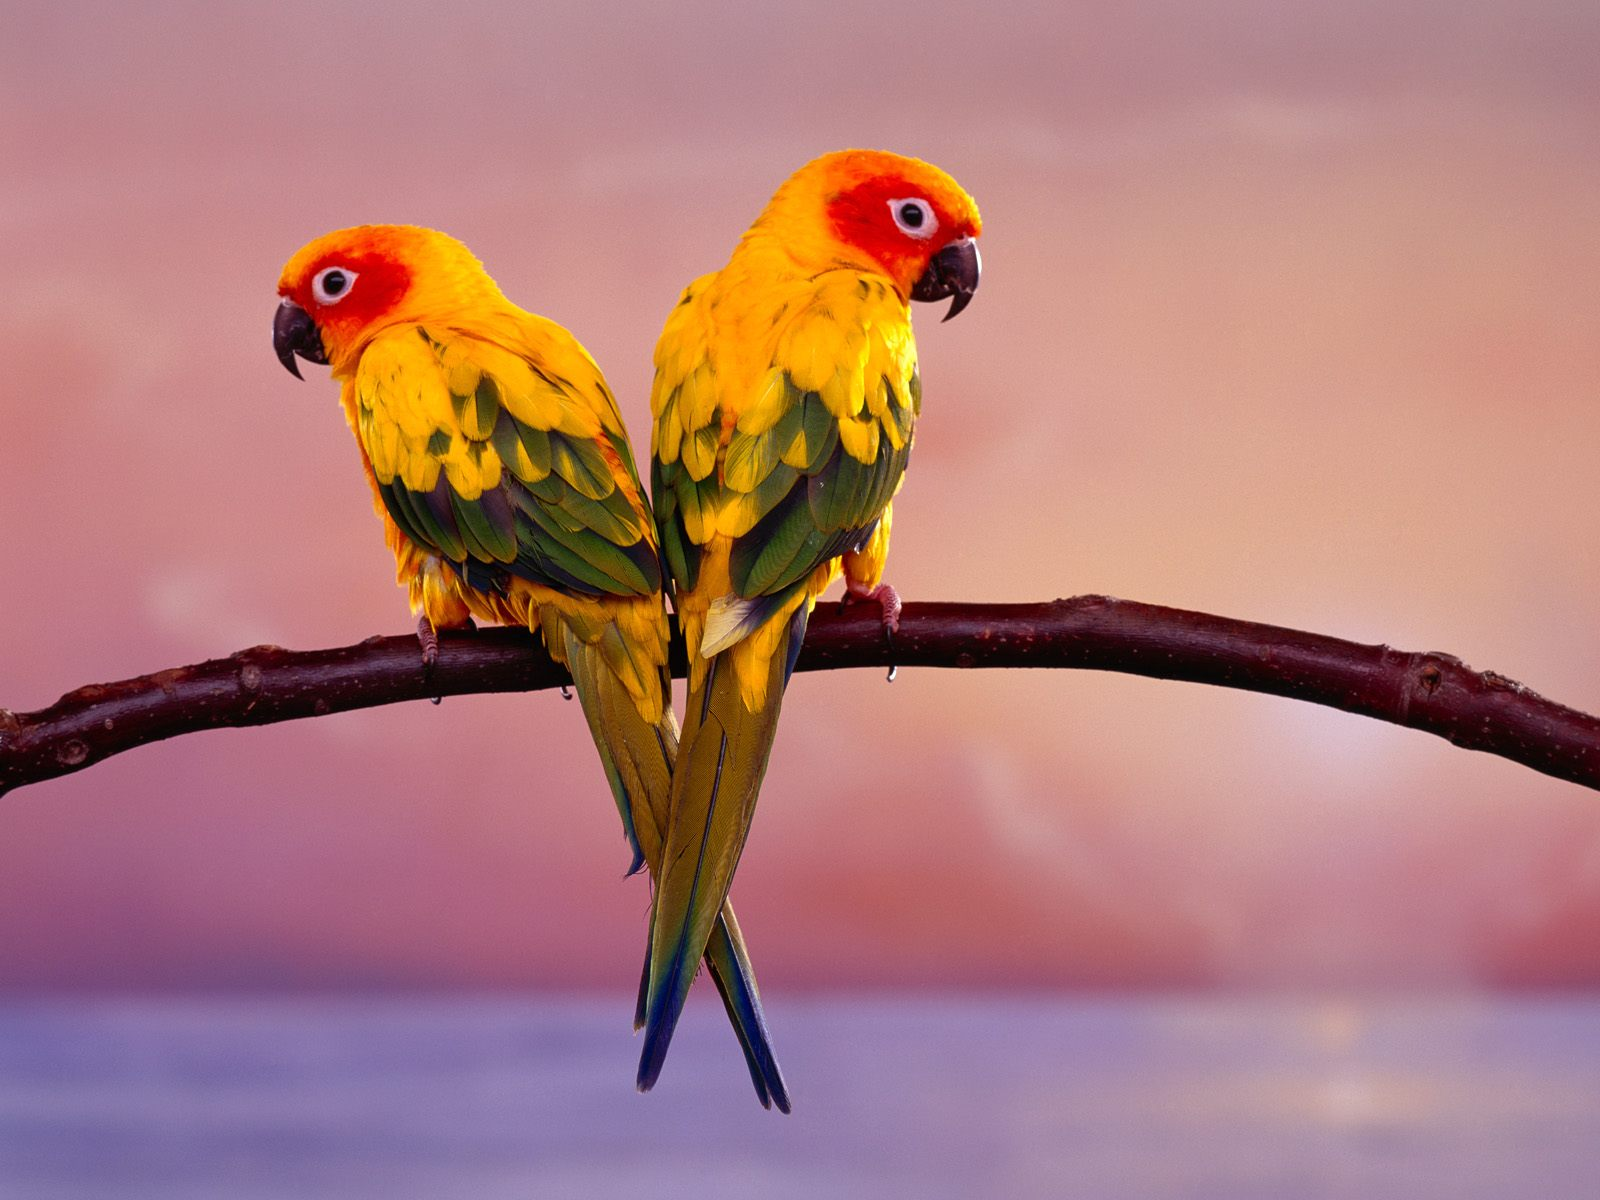 Love Birds Wallpaper For Mobile : Life is Better with a cute Outfit: Love Birds Wallpapers